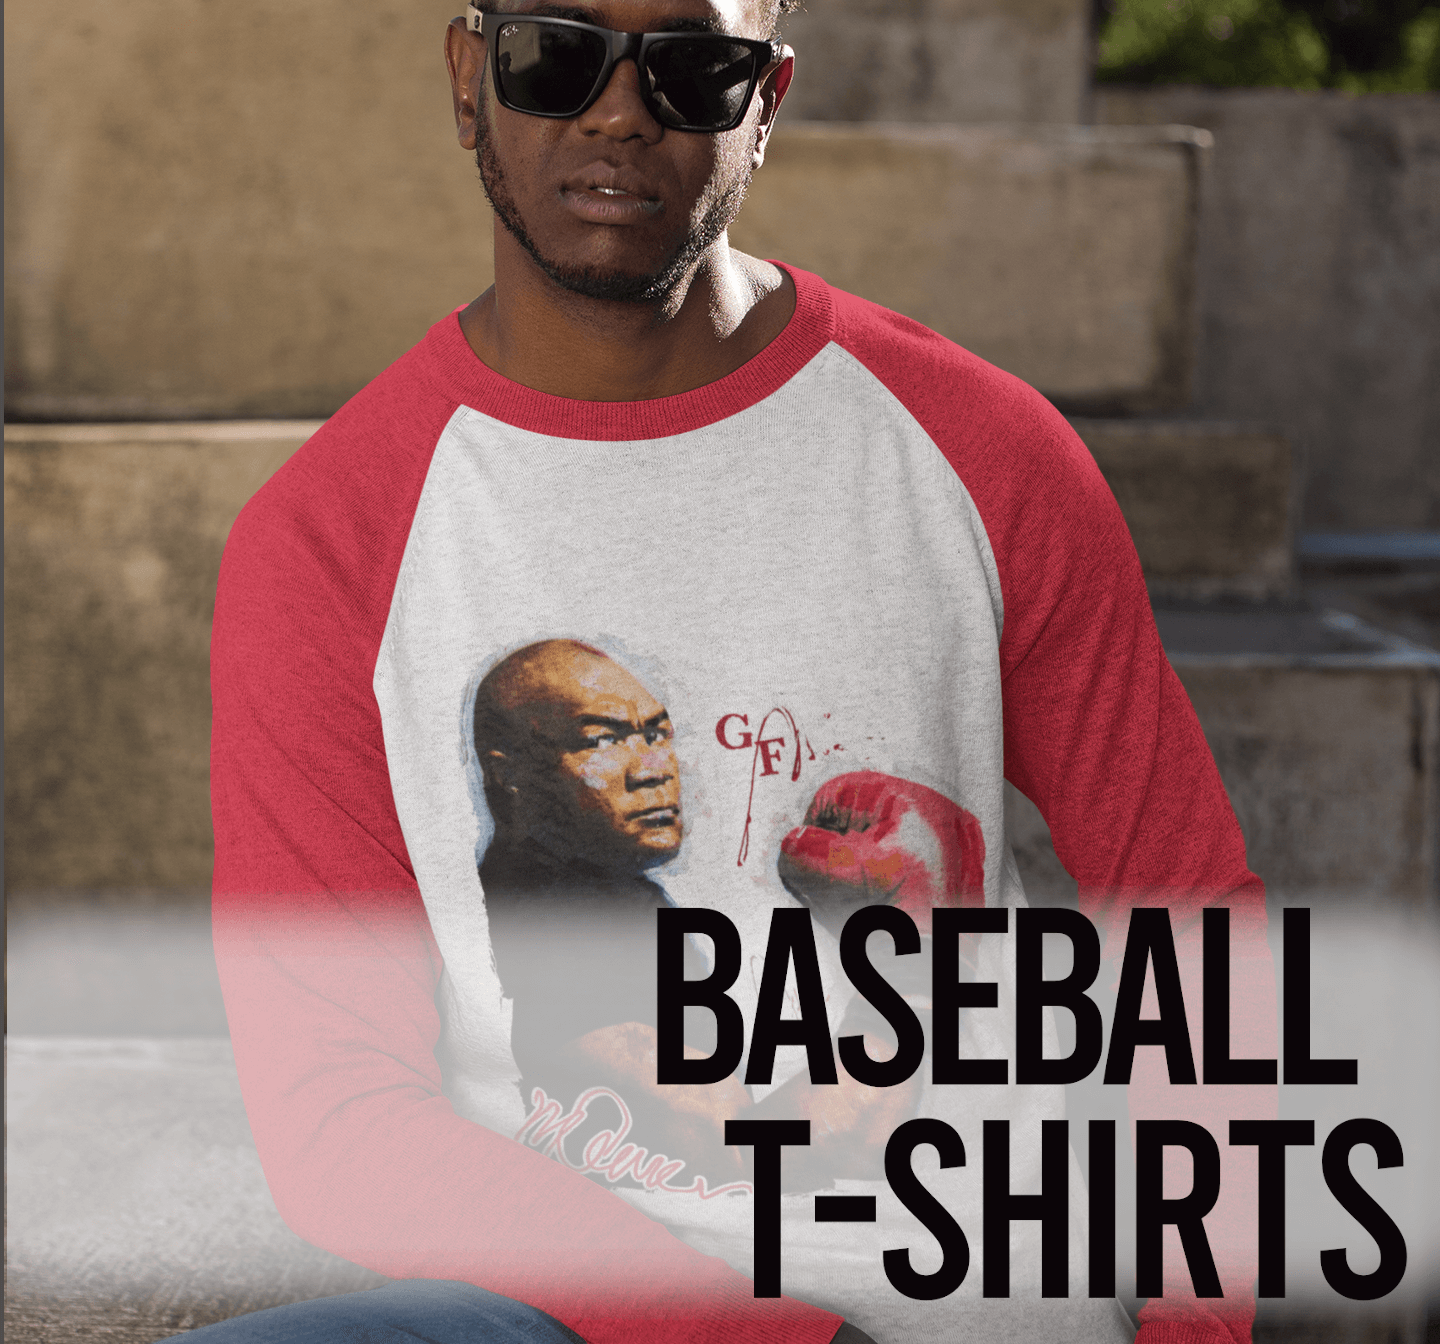 Baseball Long Sleeves T-shirts